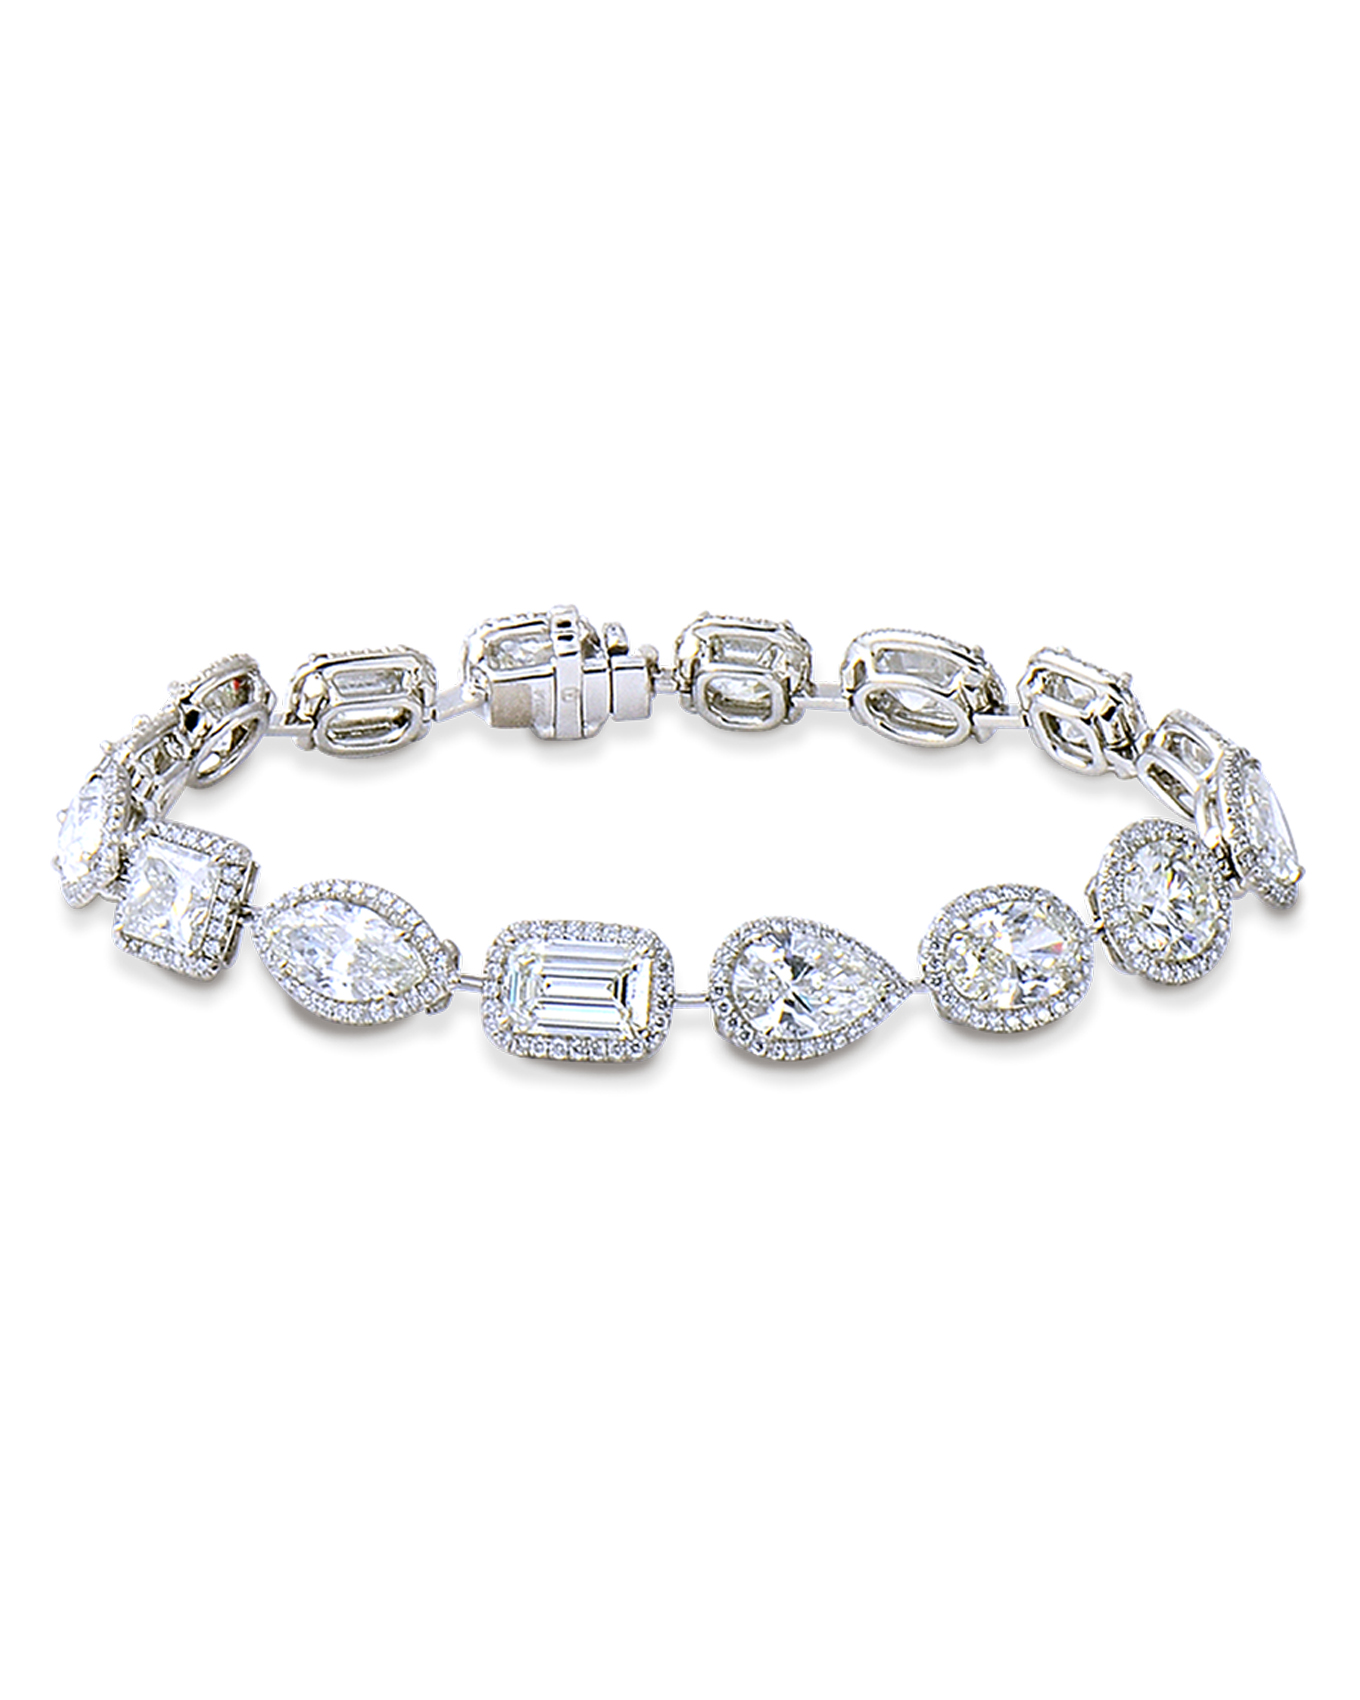 cluster products gresia travel jewelry diamond wedding two bracelet cubic zirconiatennis statement zirconia cz marquise sparkles carat classic rolls beloved tennis bridal